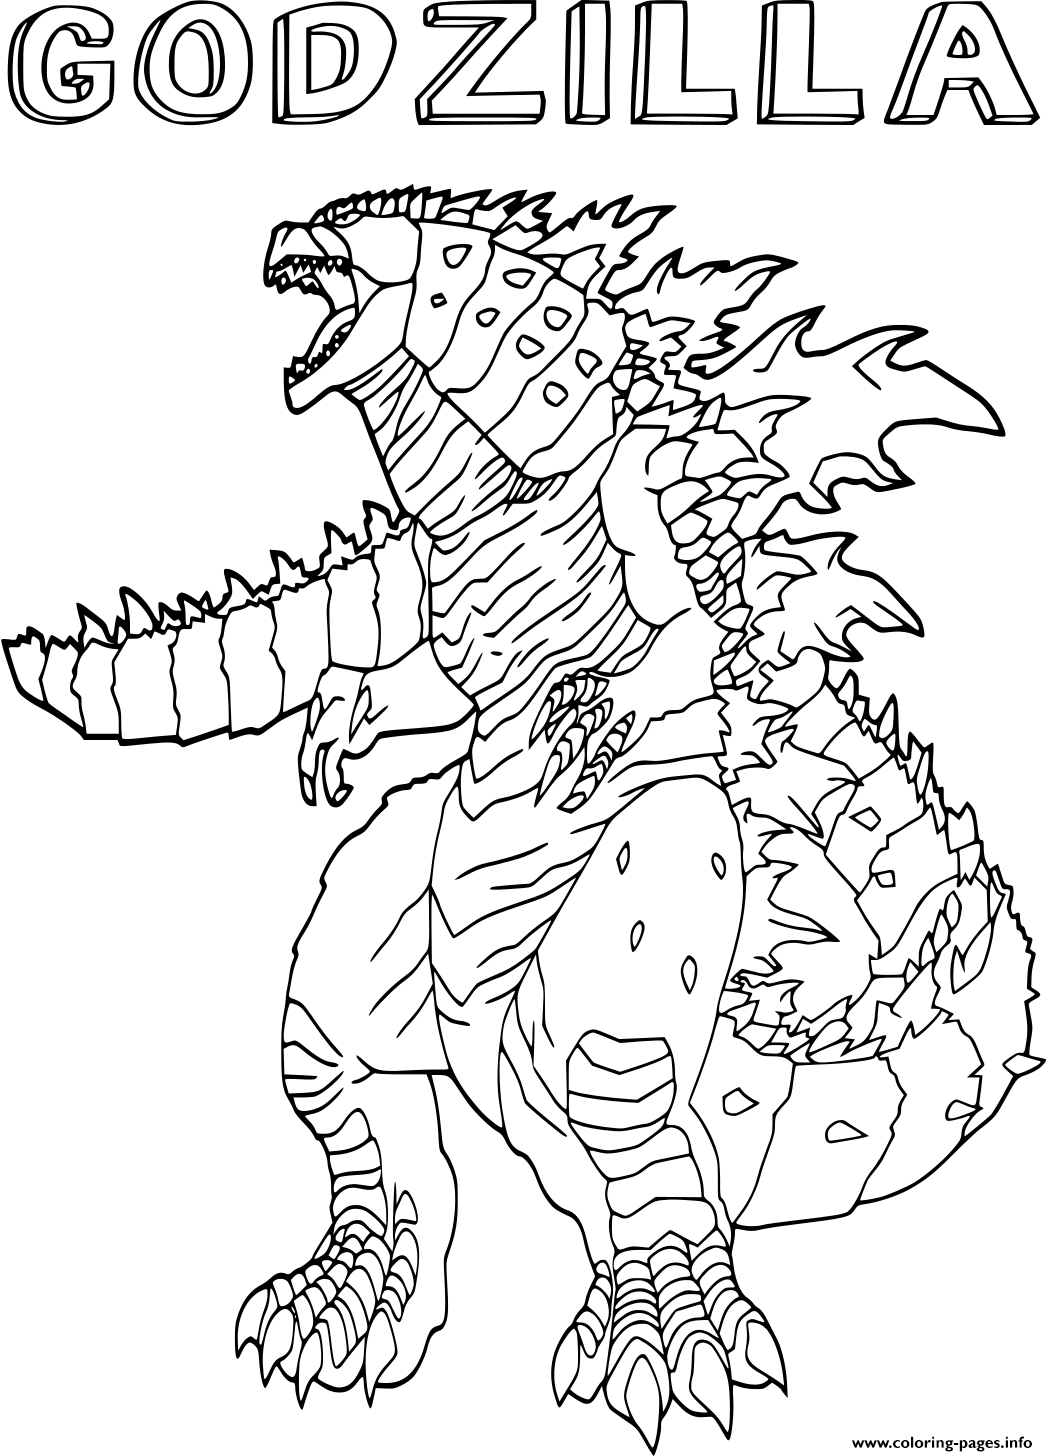 Godzilla Monster Creature Coloring Pages Printable